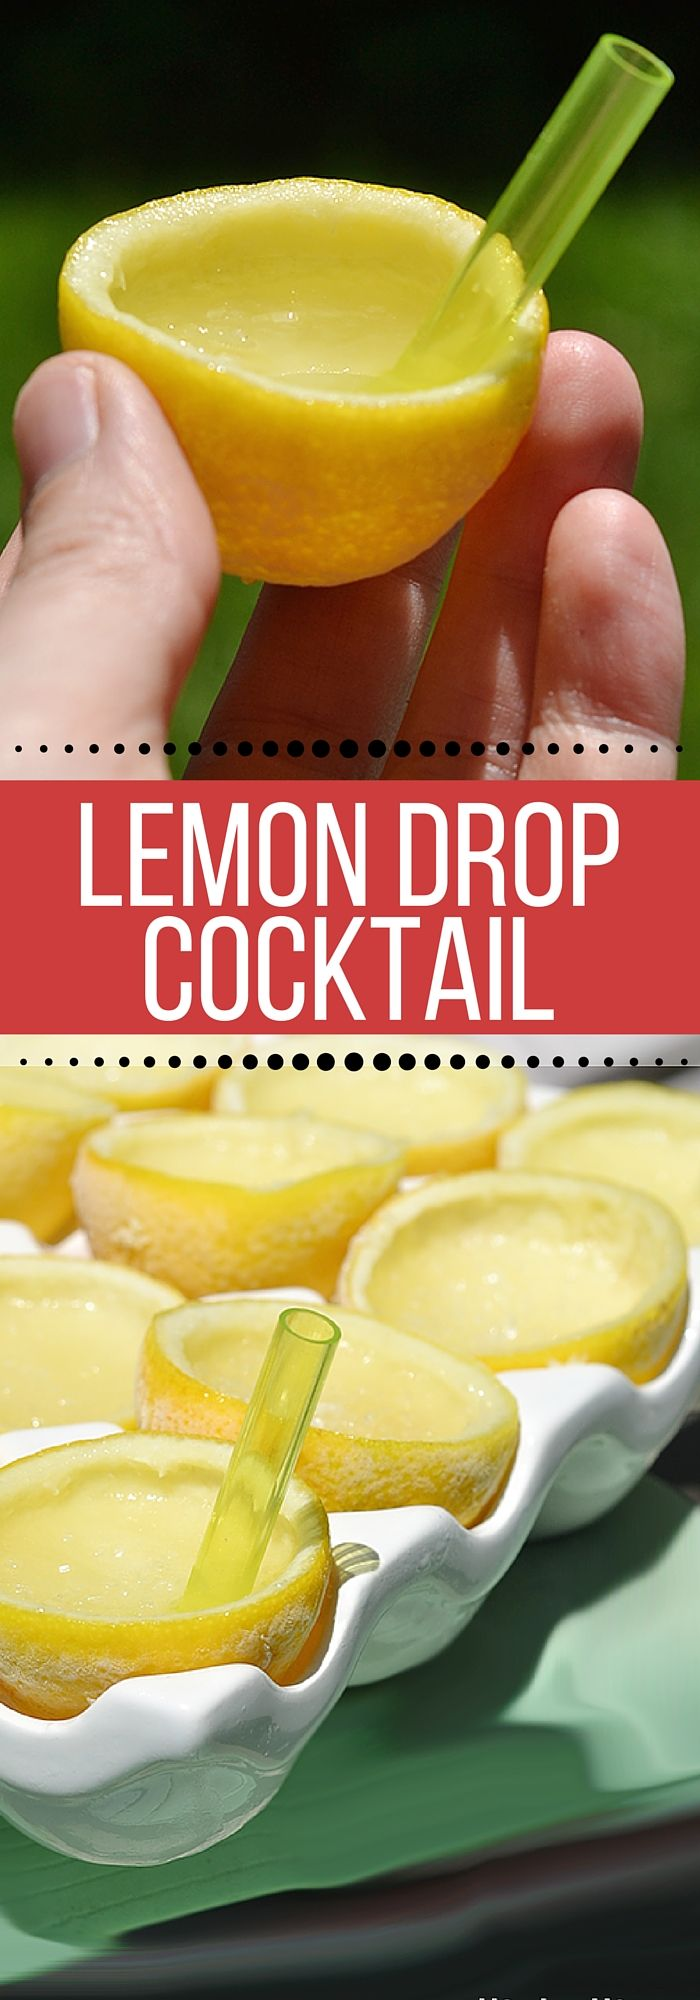 ... and Alcoholic beverages on Pinterest | Lemon drops, Mojito and Sangria